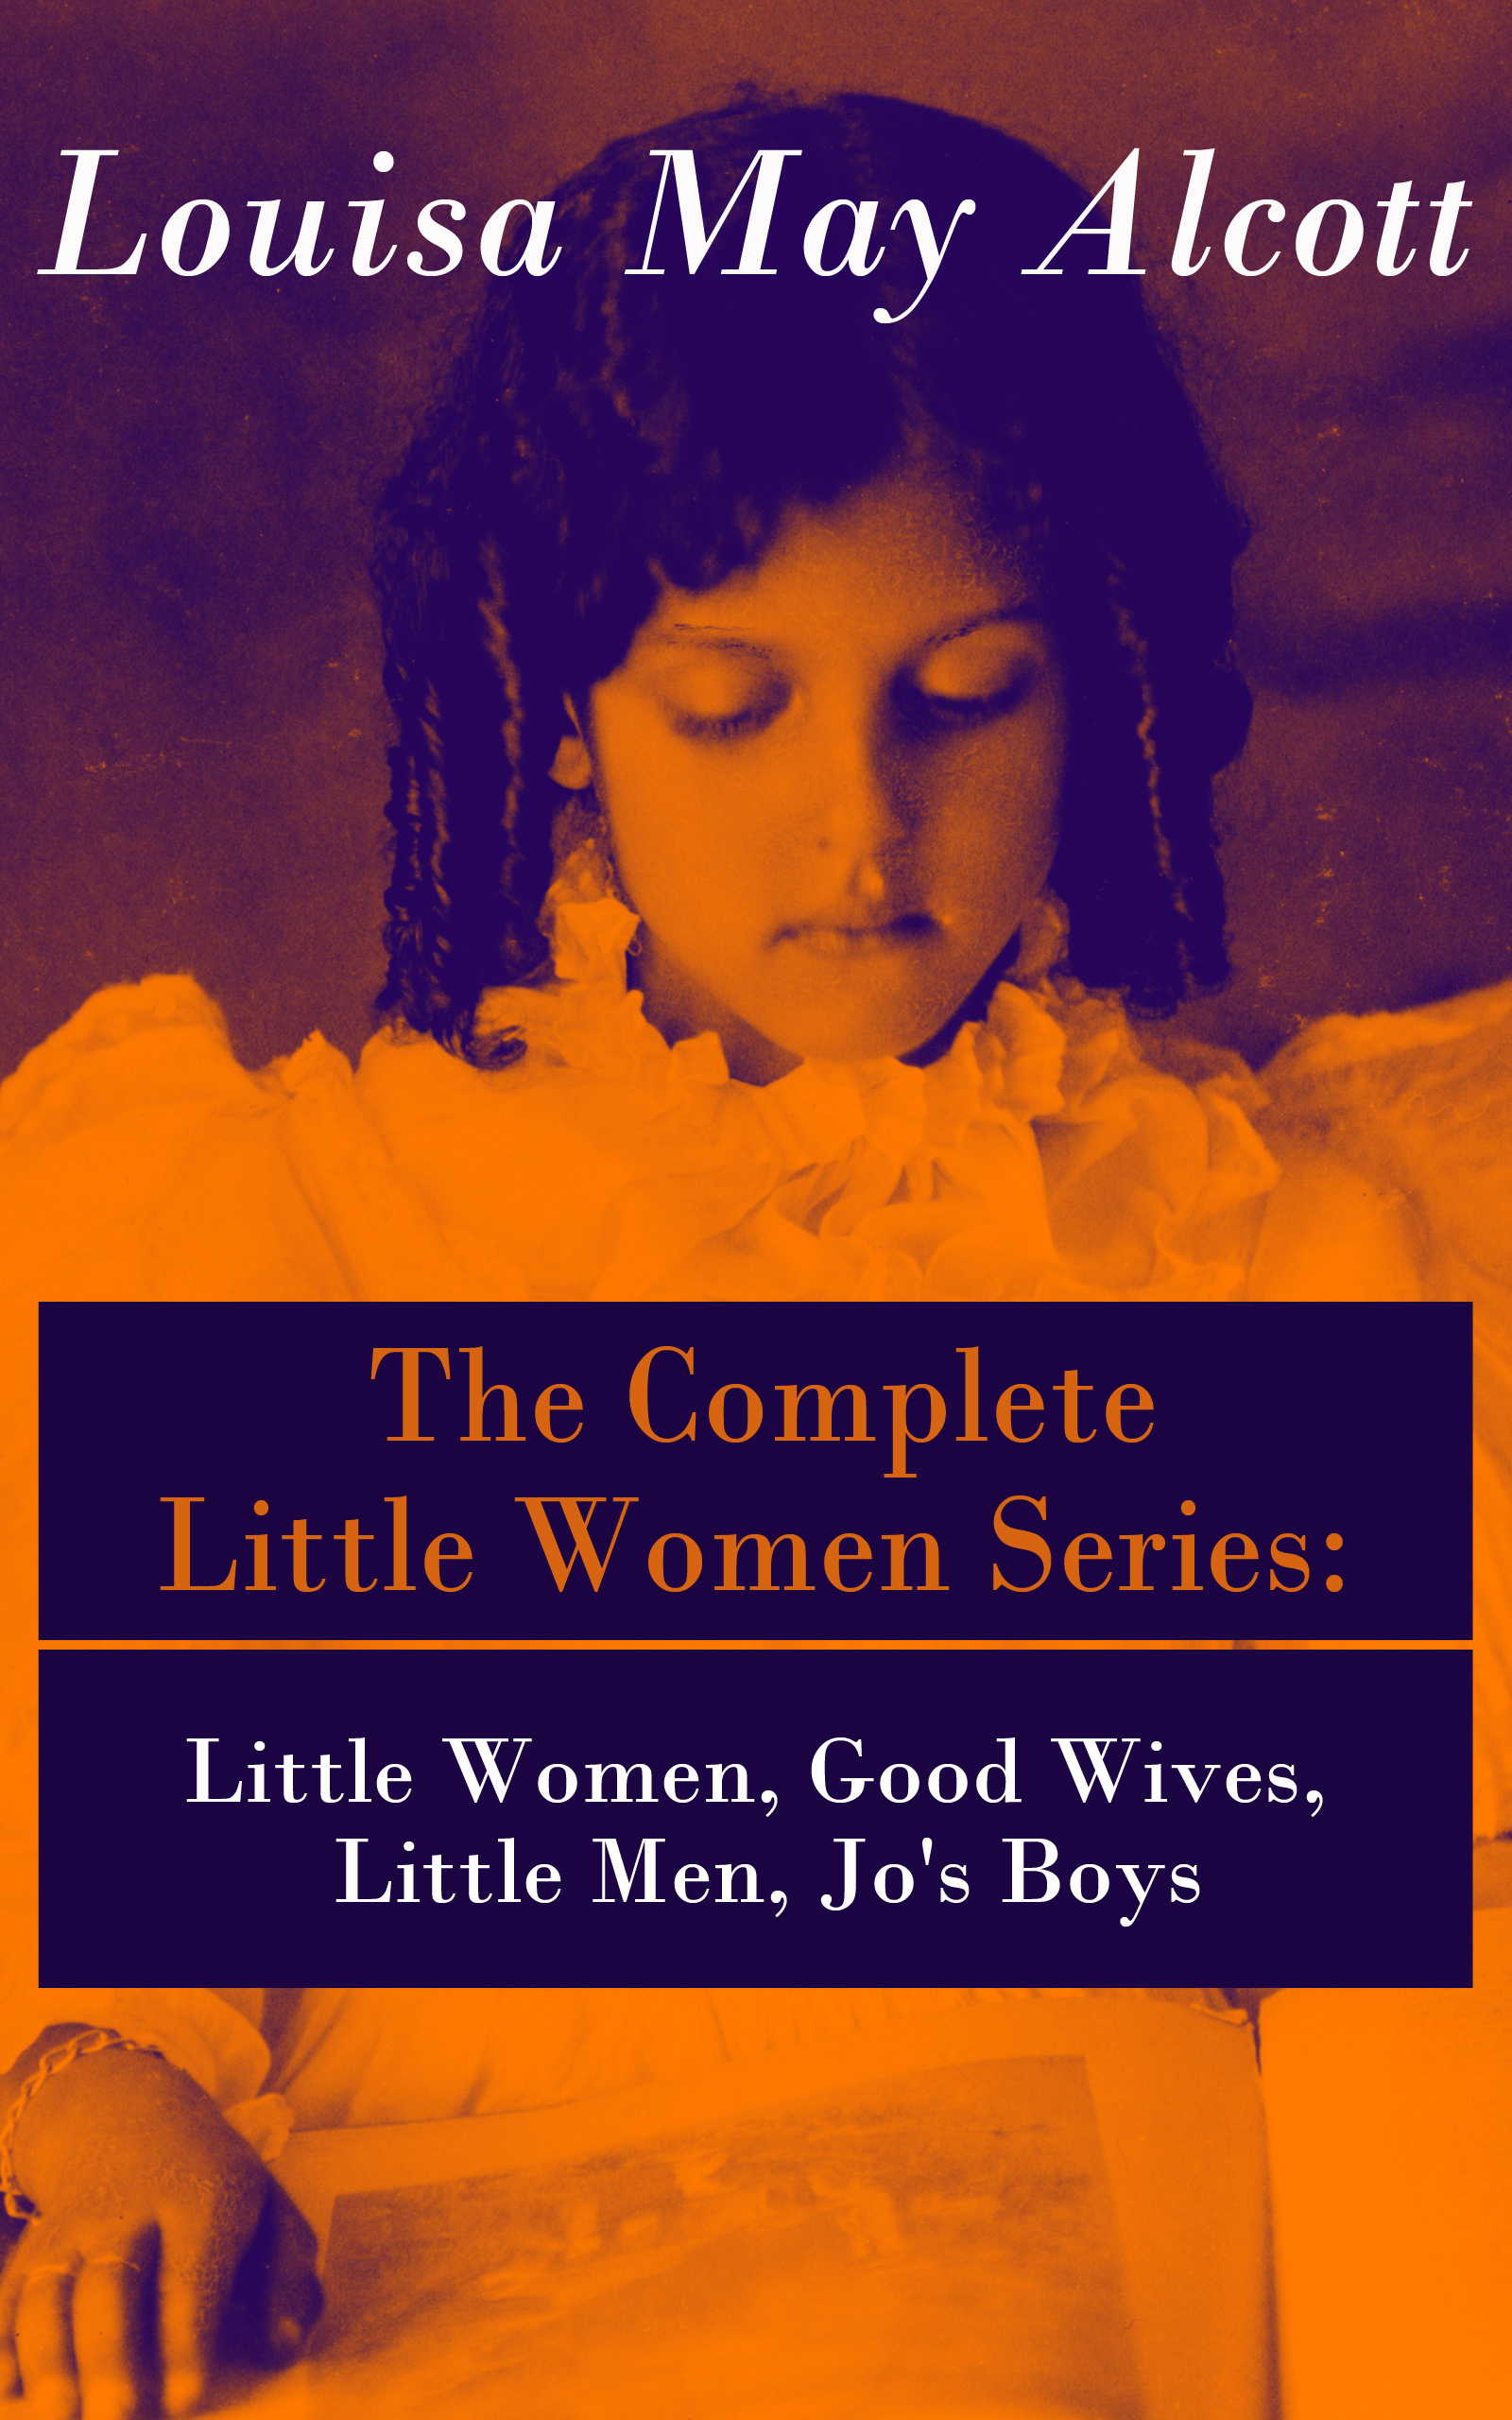 The Complete Little Women Series: Little Women, Good Wives, Little Men, Jo's Boys